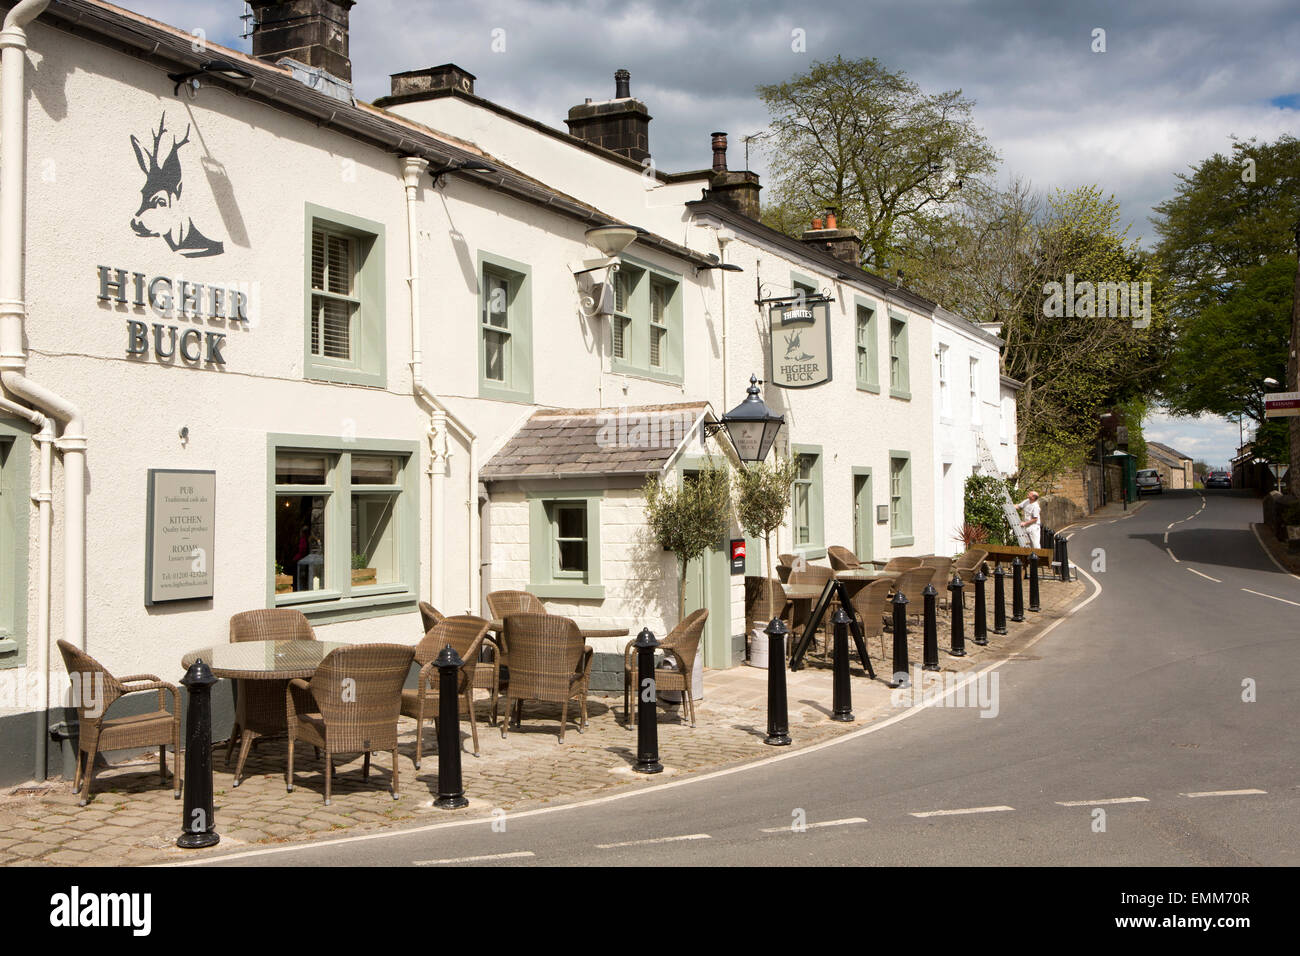 UK, England, Lancashire, Ribble Valley, Waddington, Higher Buck pub - Stock Image